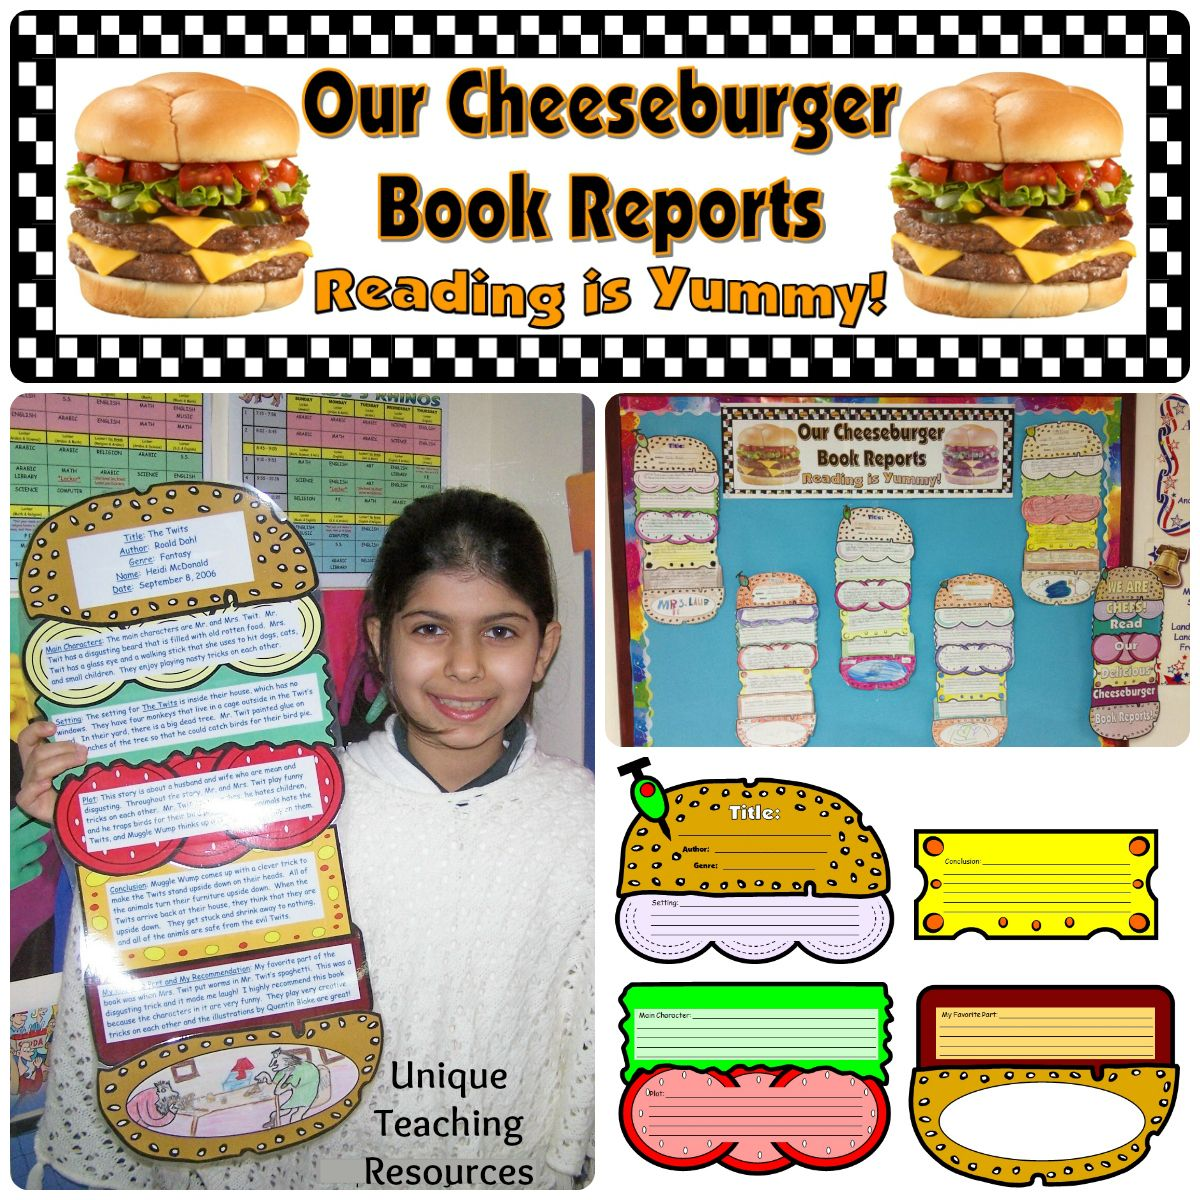 hamburger book report project Hamburger book report project score sheet name_____ class period_____ top bun (title)_____ title with name and class period  2.